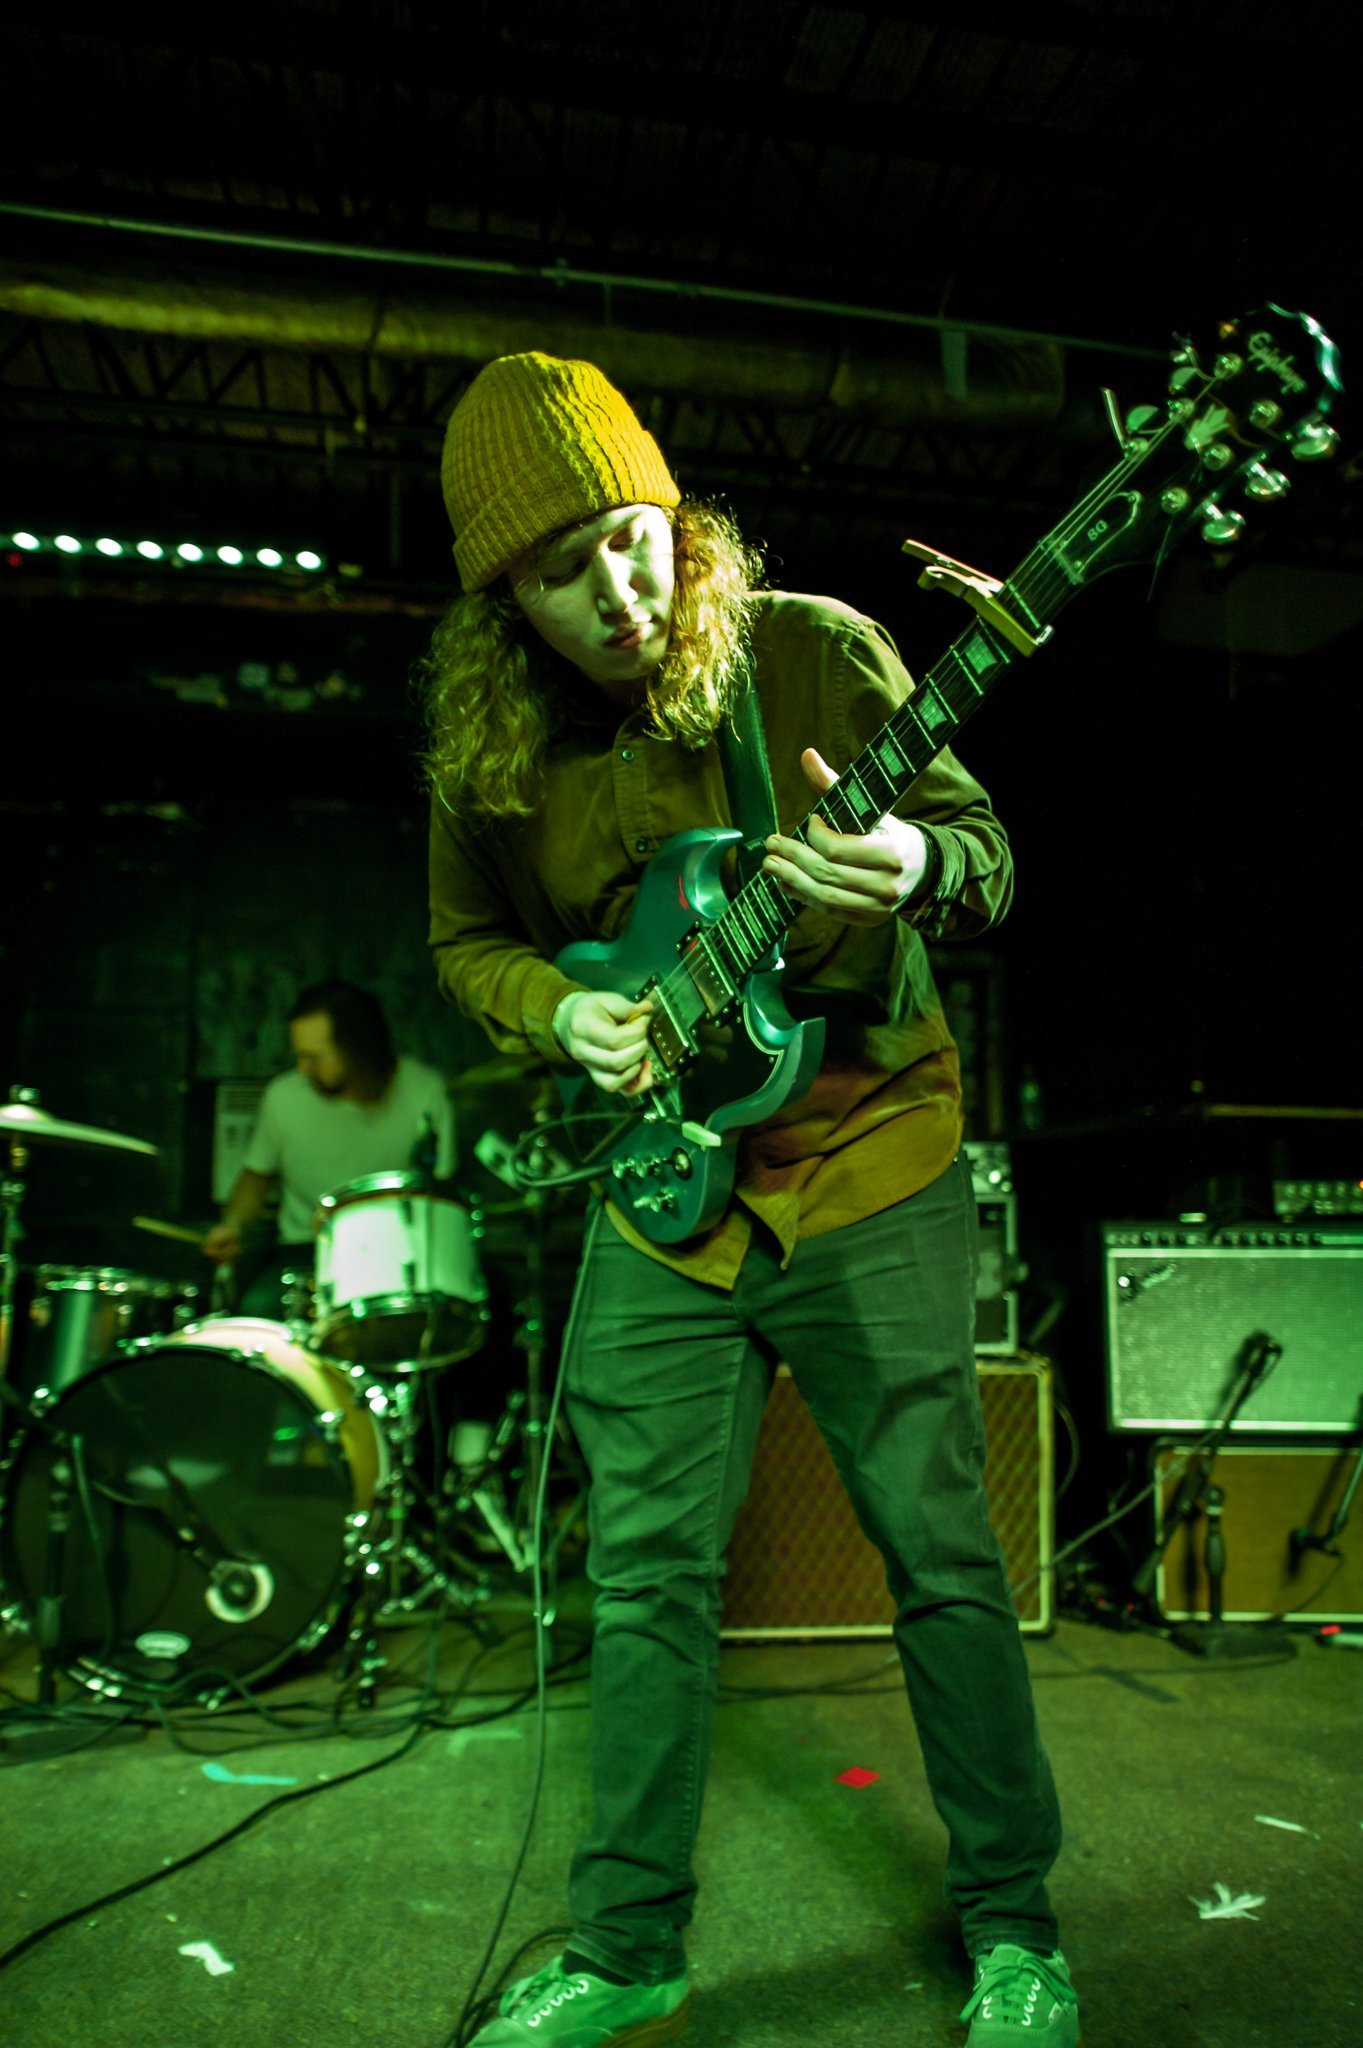 Panther Ray at Gabe's Iowa City